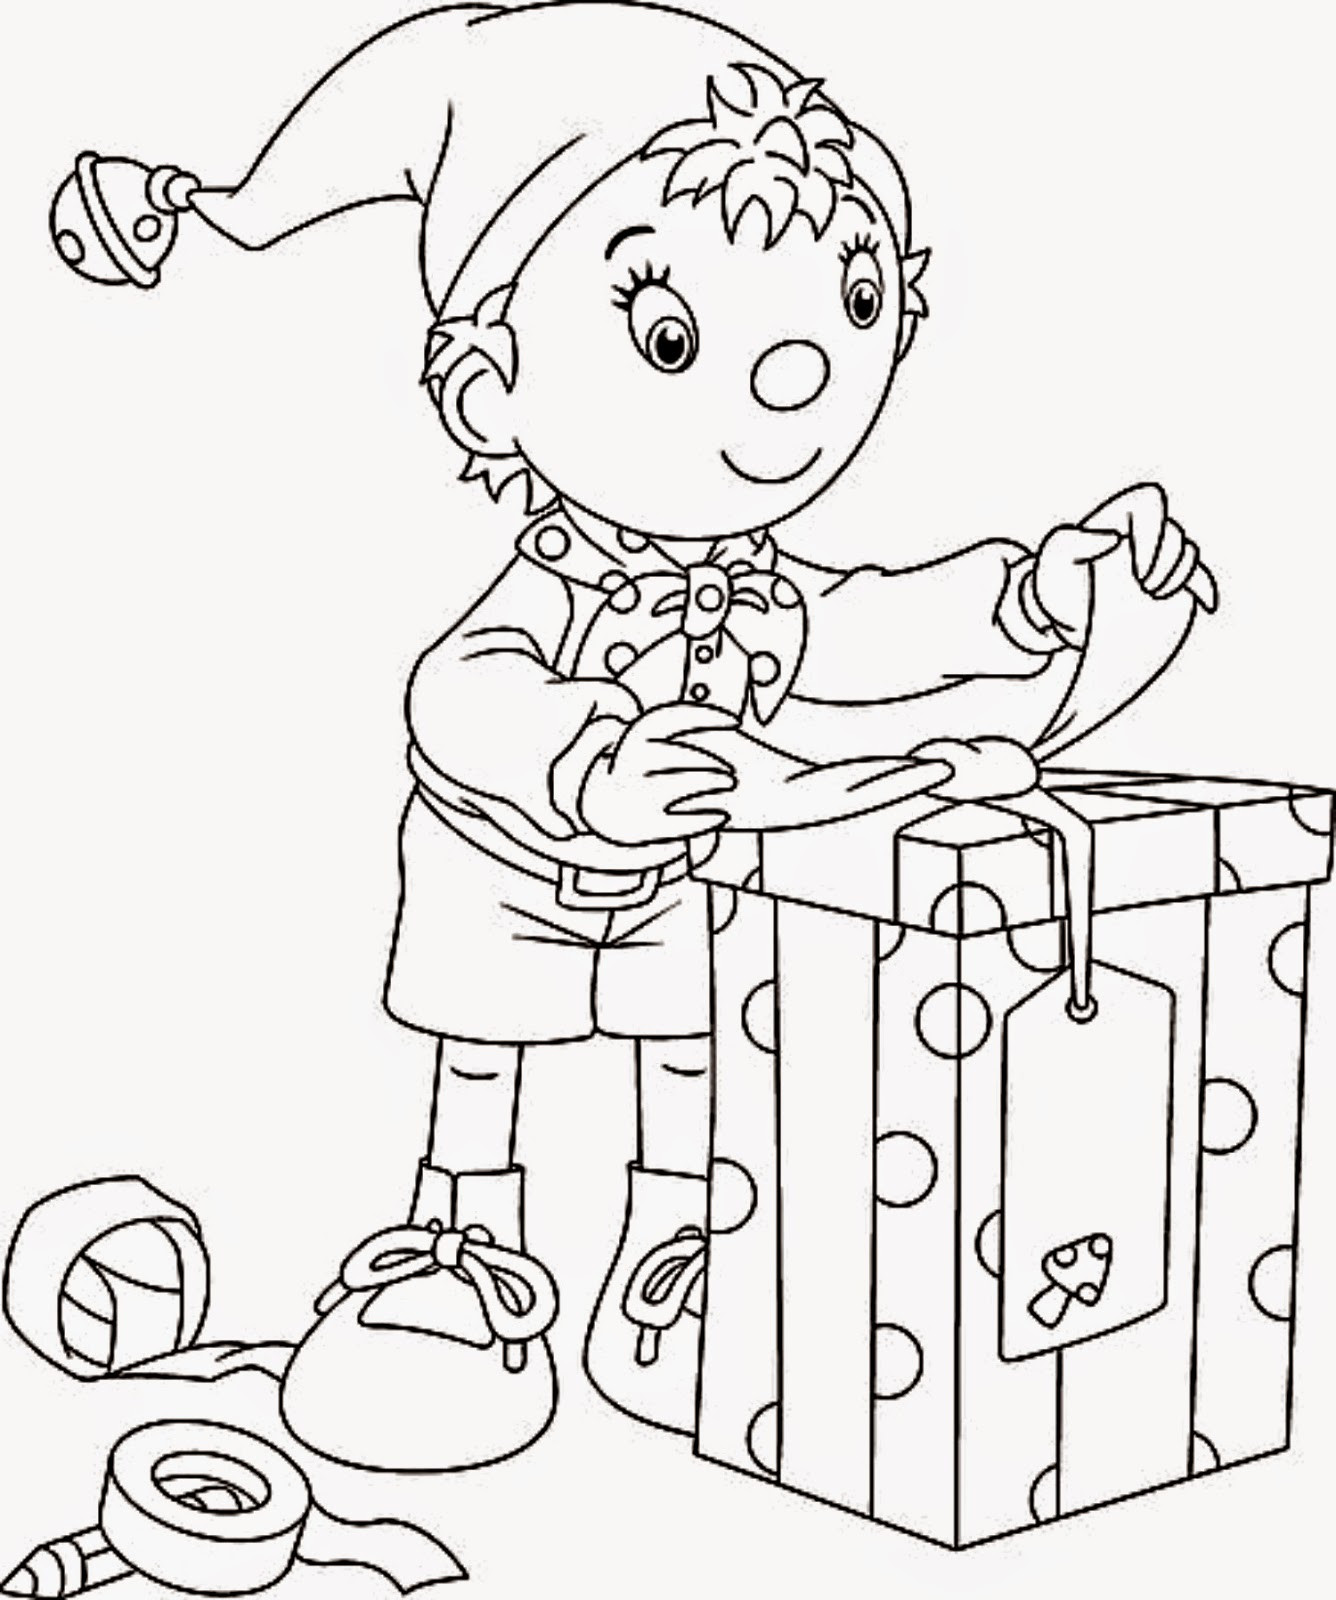 Elf Coloring Pages Printable  Coloring Pages Christmas Elf Coloring Pages Free and